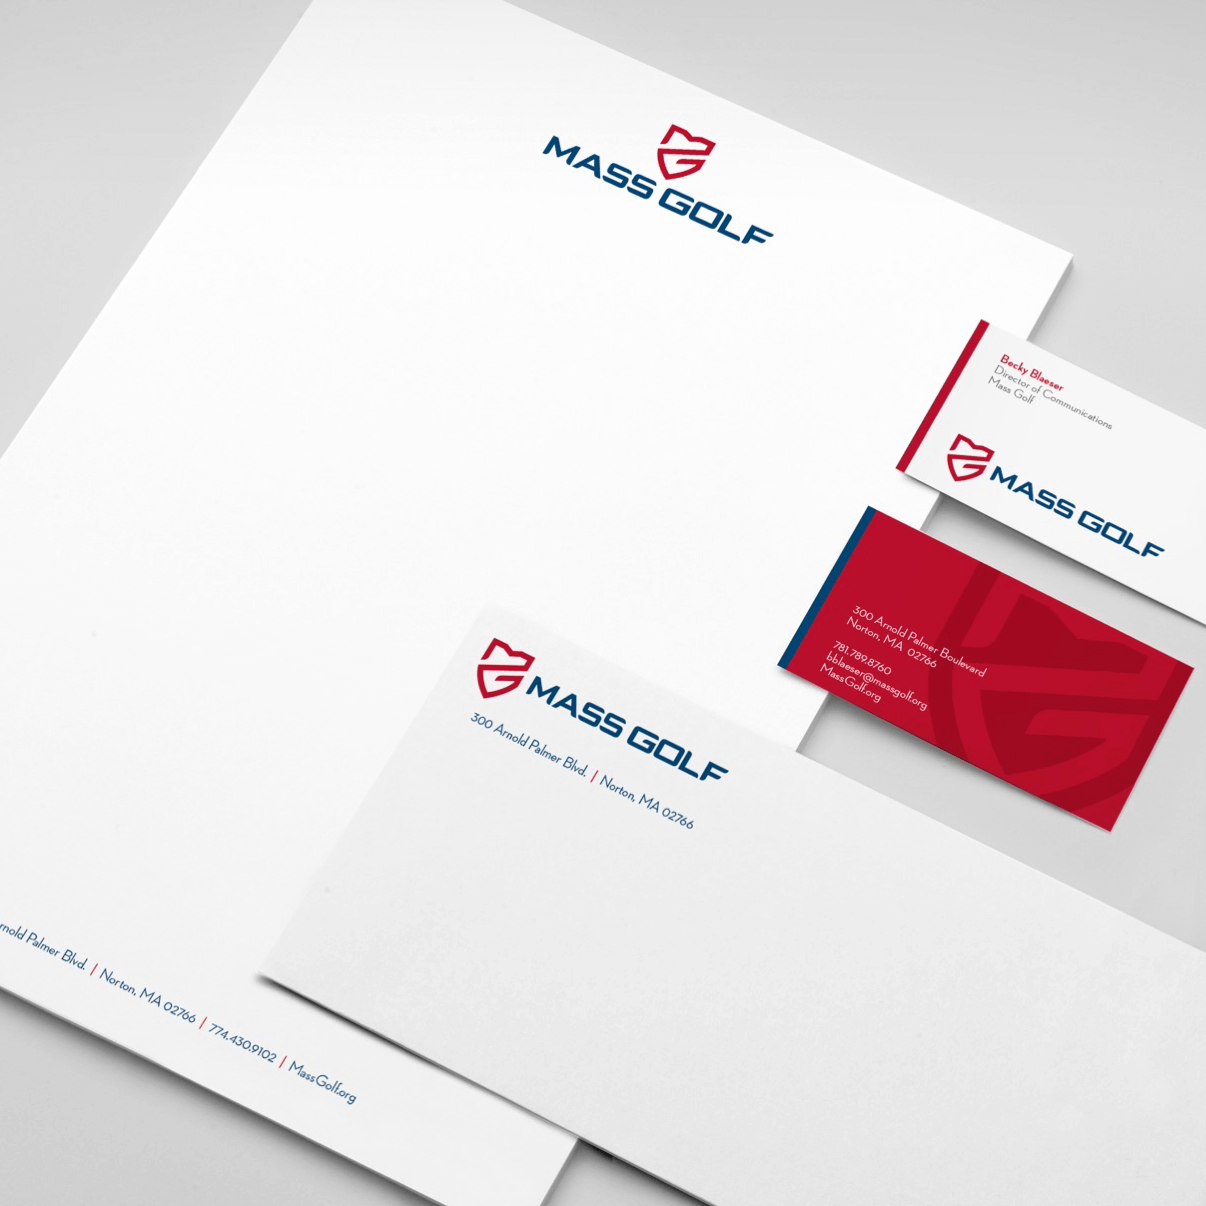 Mass Golf Company Stationary | Buffalo.Agency